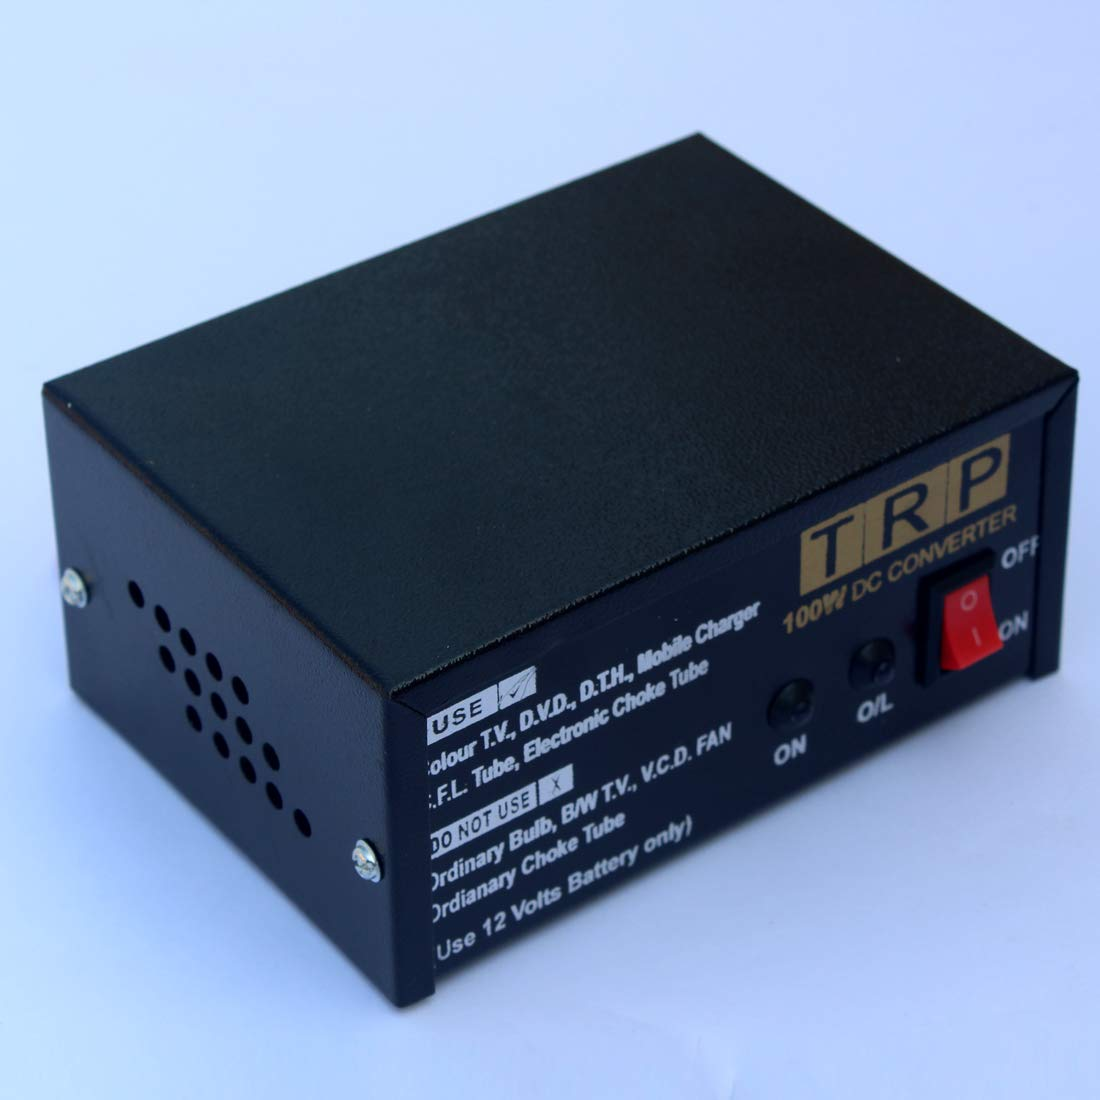 Trp Traders 12V DC Power To 220V AC Converter for Home, Car, Boat, Solar  Panel, Color Tv, Dth Box, Mobile Charger, Cfl (100W)